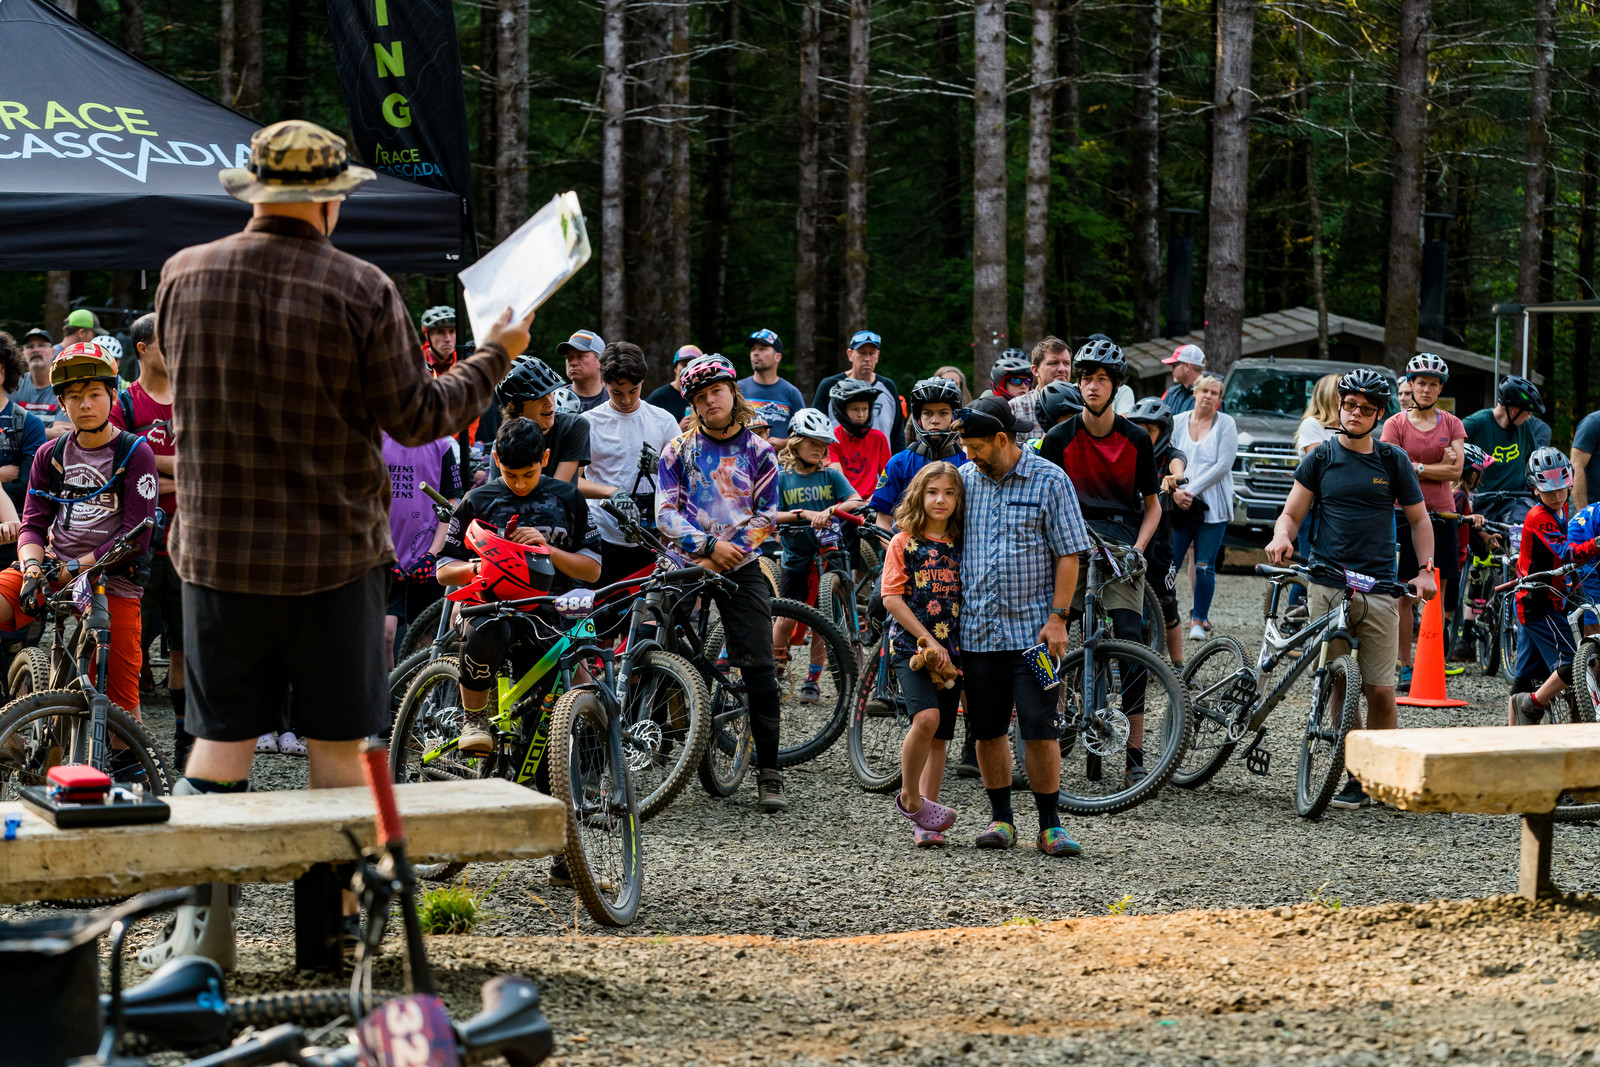 Race Director Trey Wilson imparting his knowledge on everyonde during the rider's meeting.